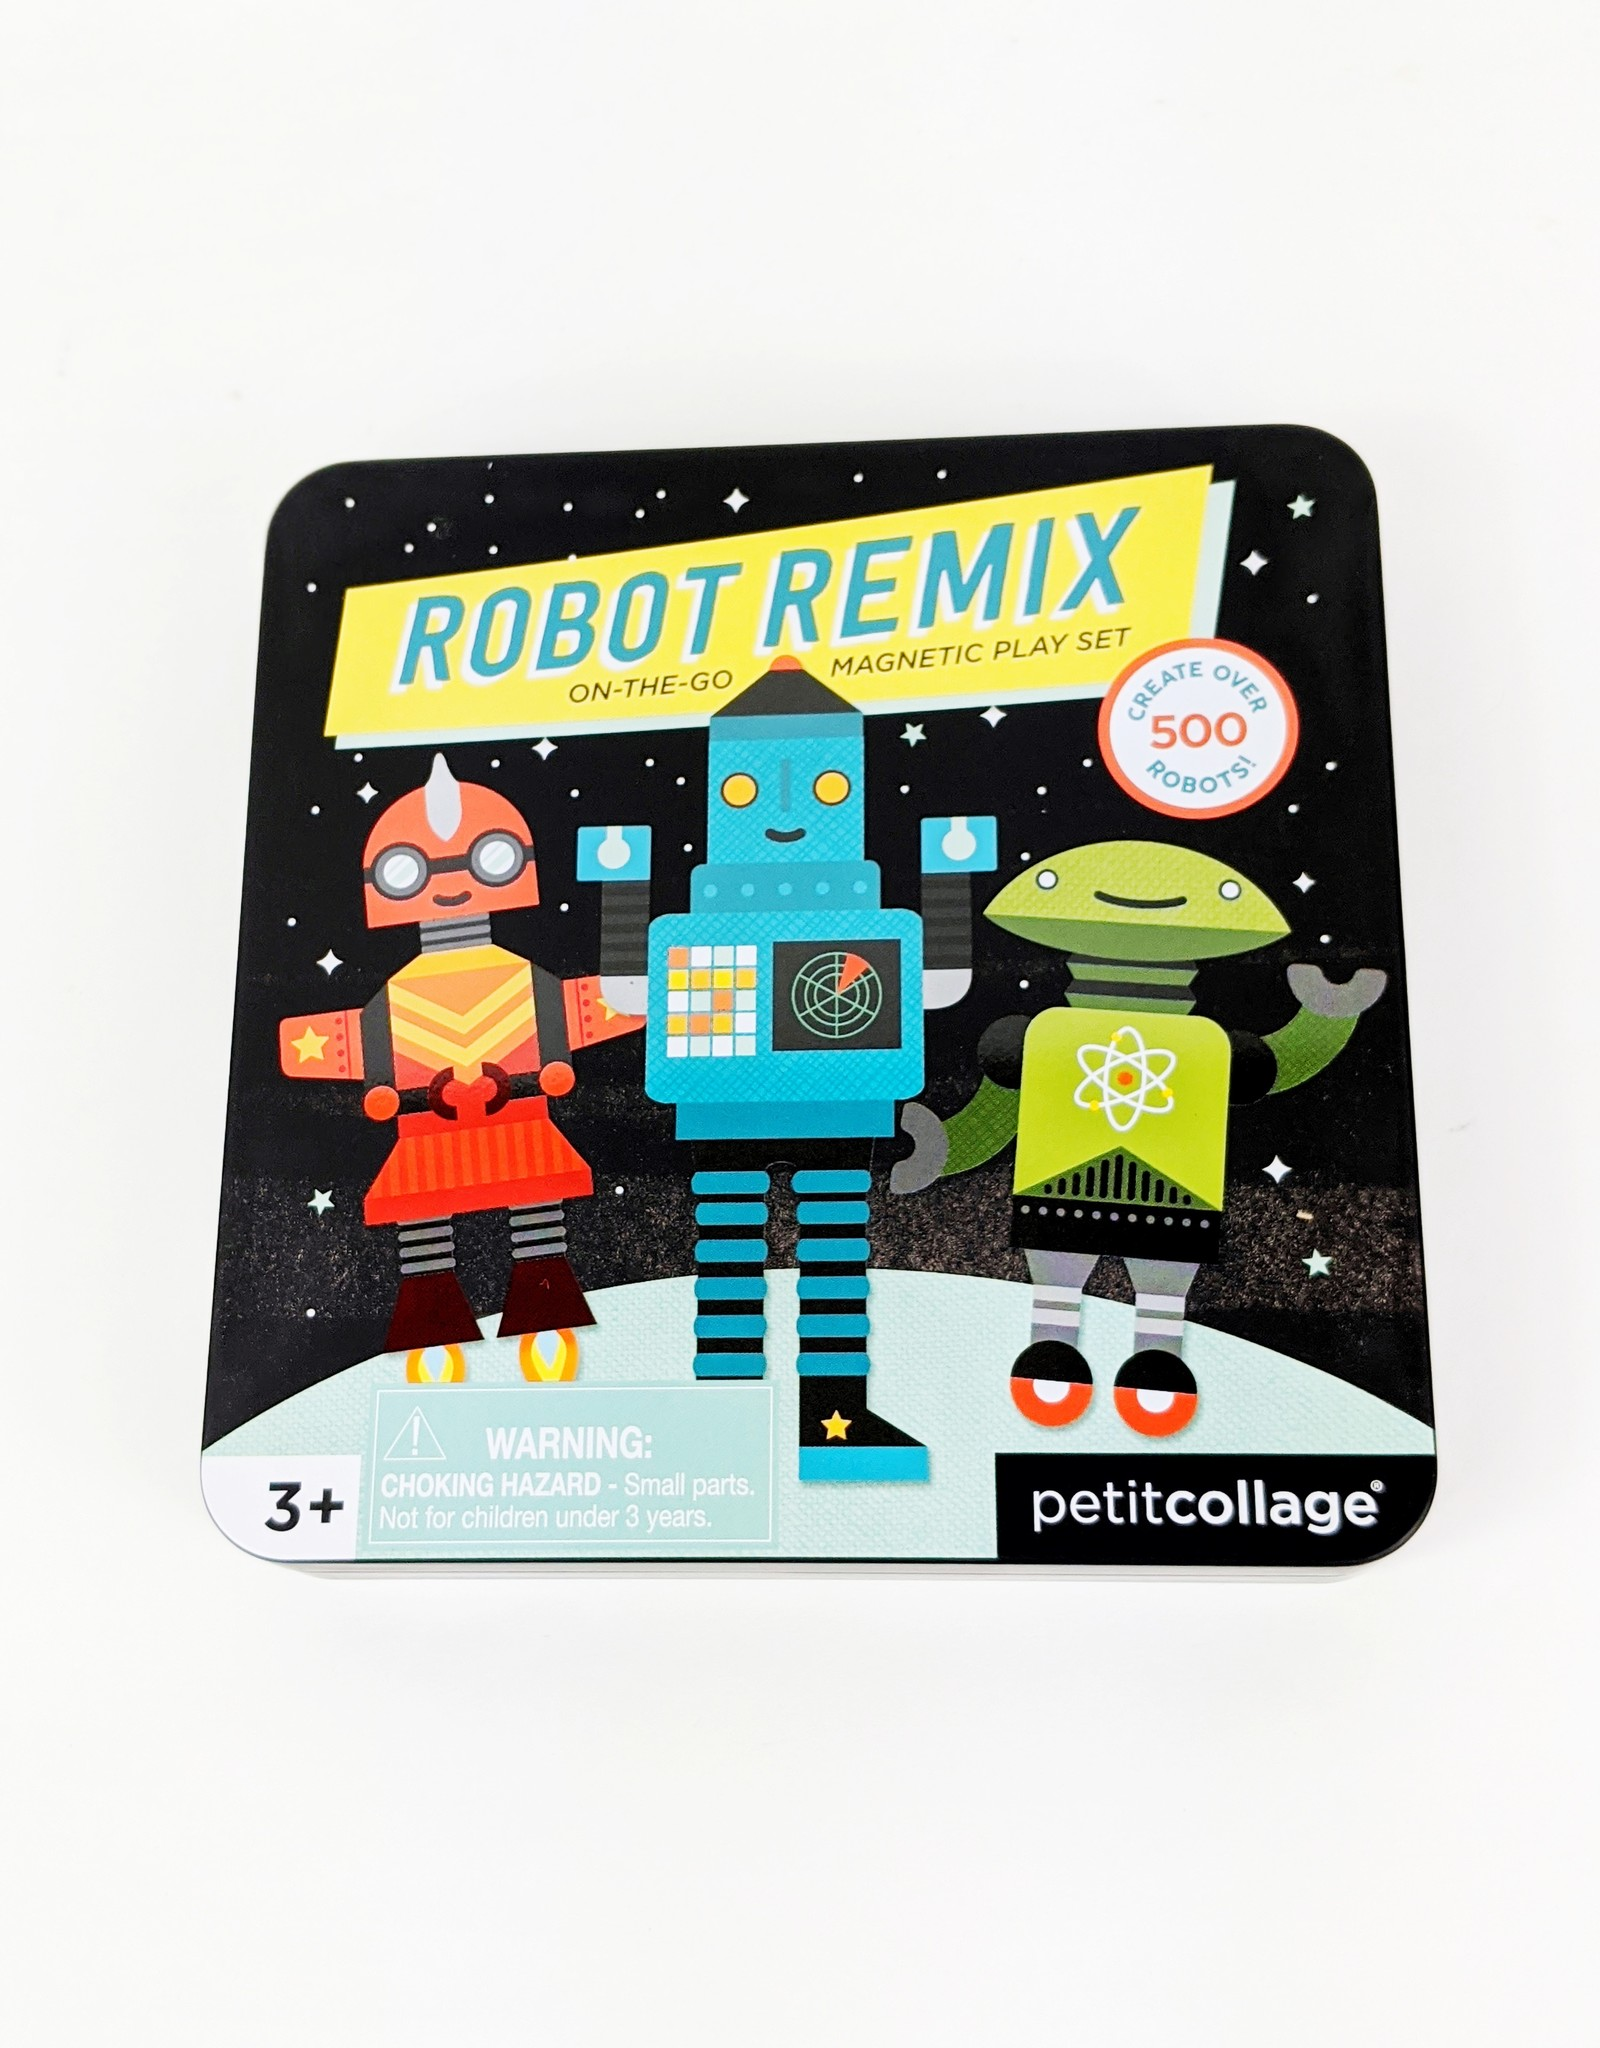 Petite Collage Robot Remix Magnetic Play Set